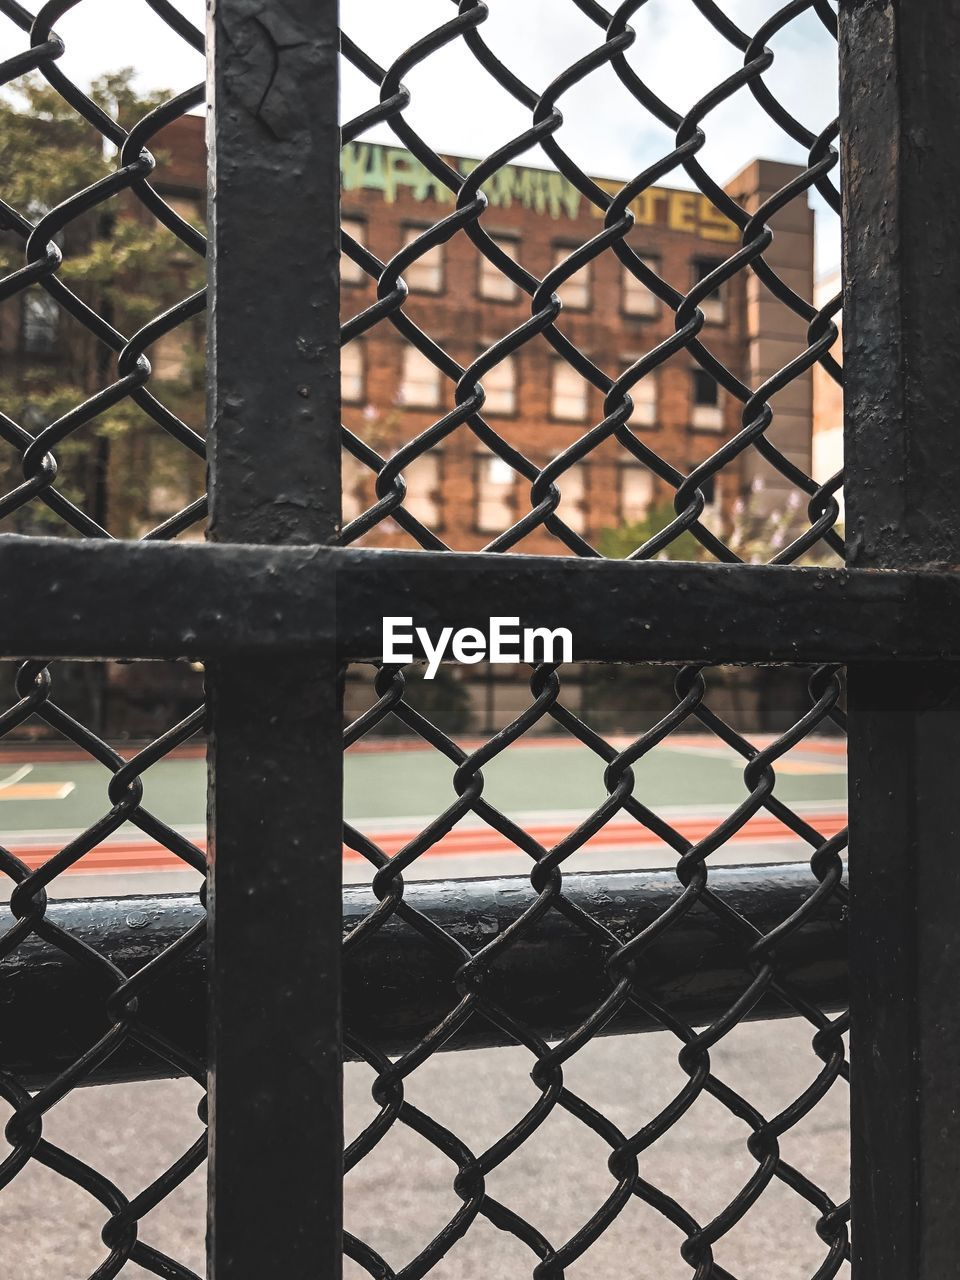 CLOSE-UP OF CHAINLINK FENCE WITH GATE